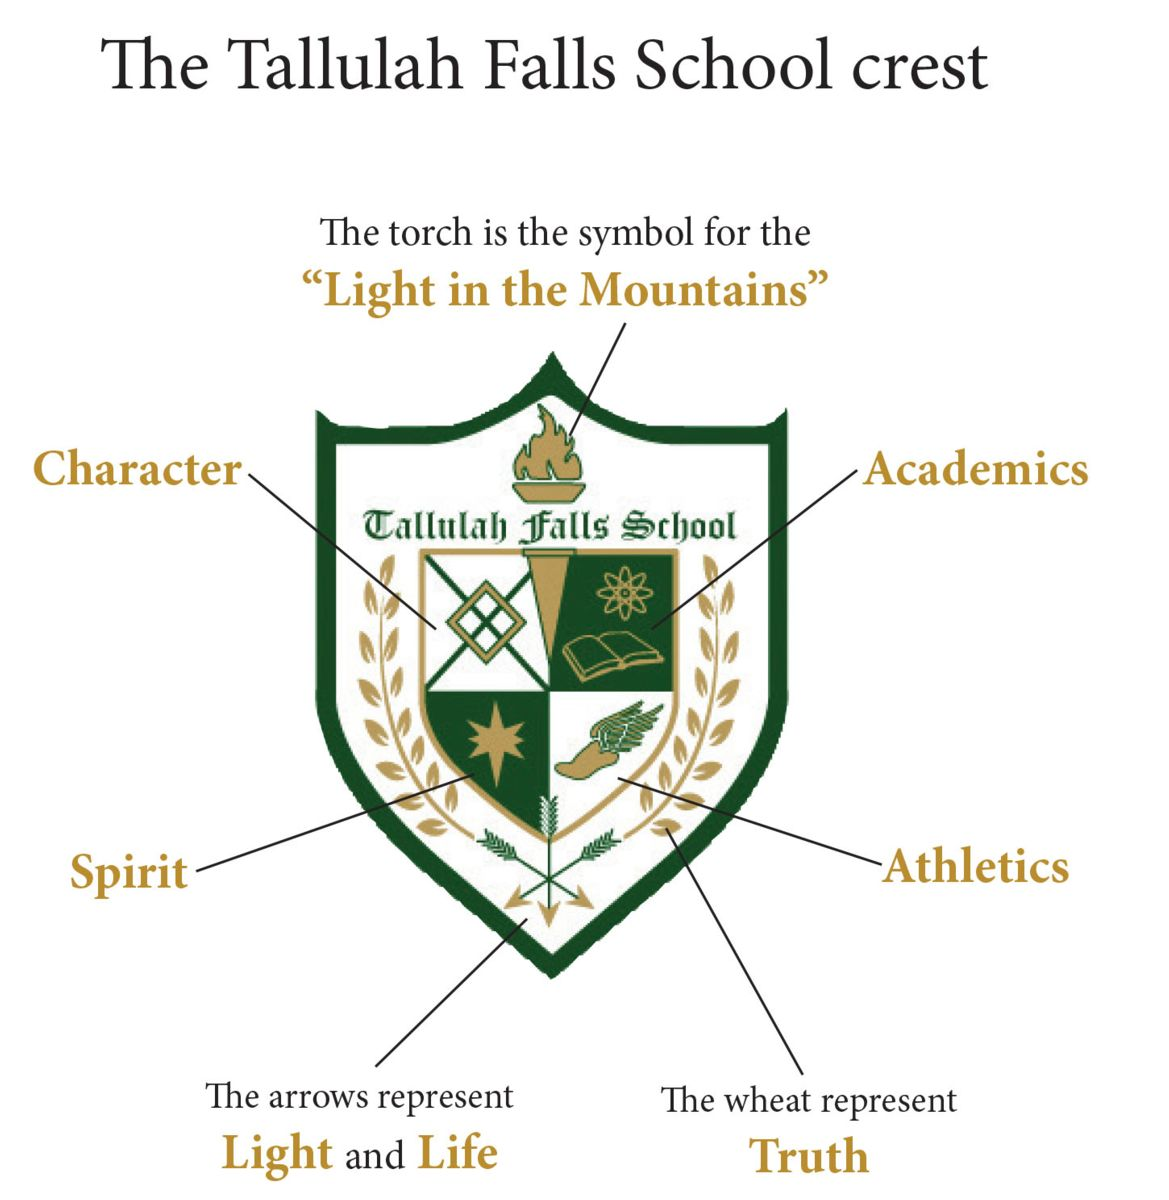 Crest Meaning Mission Tallulah Falls School